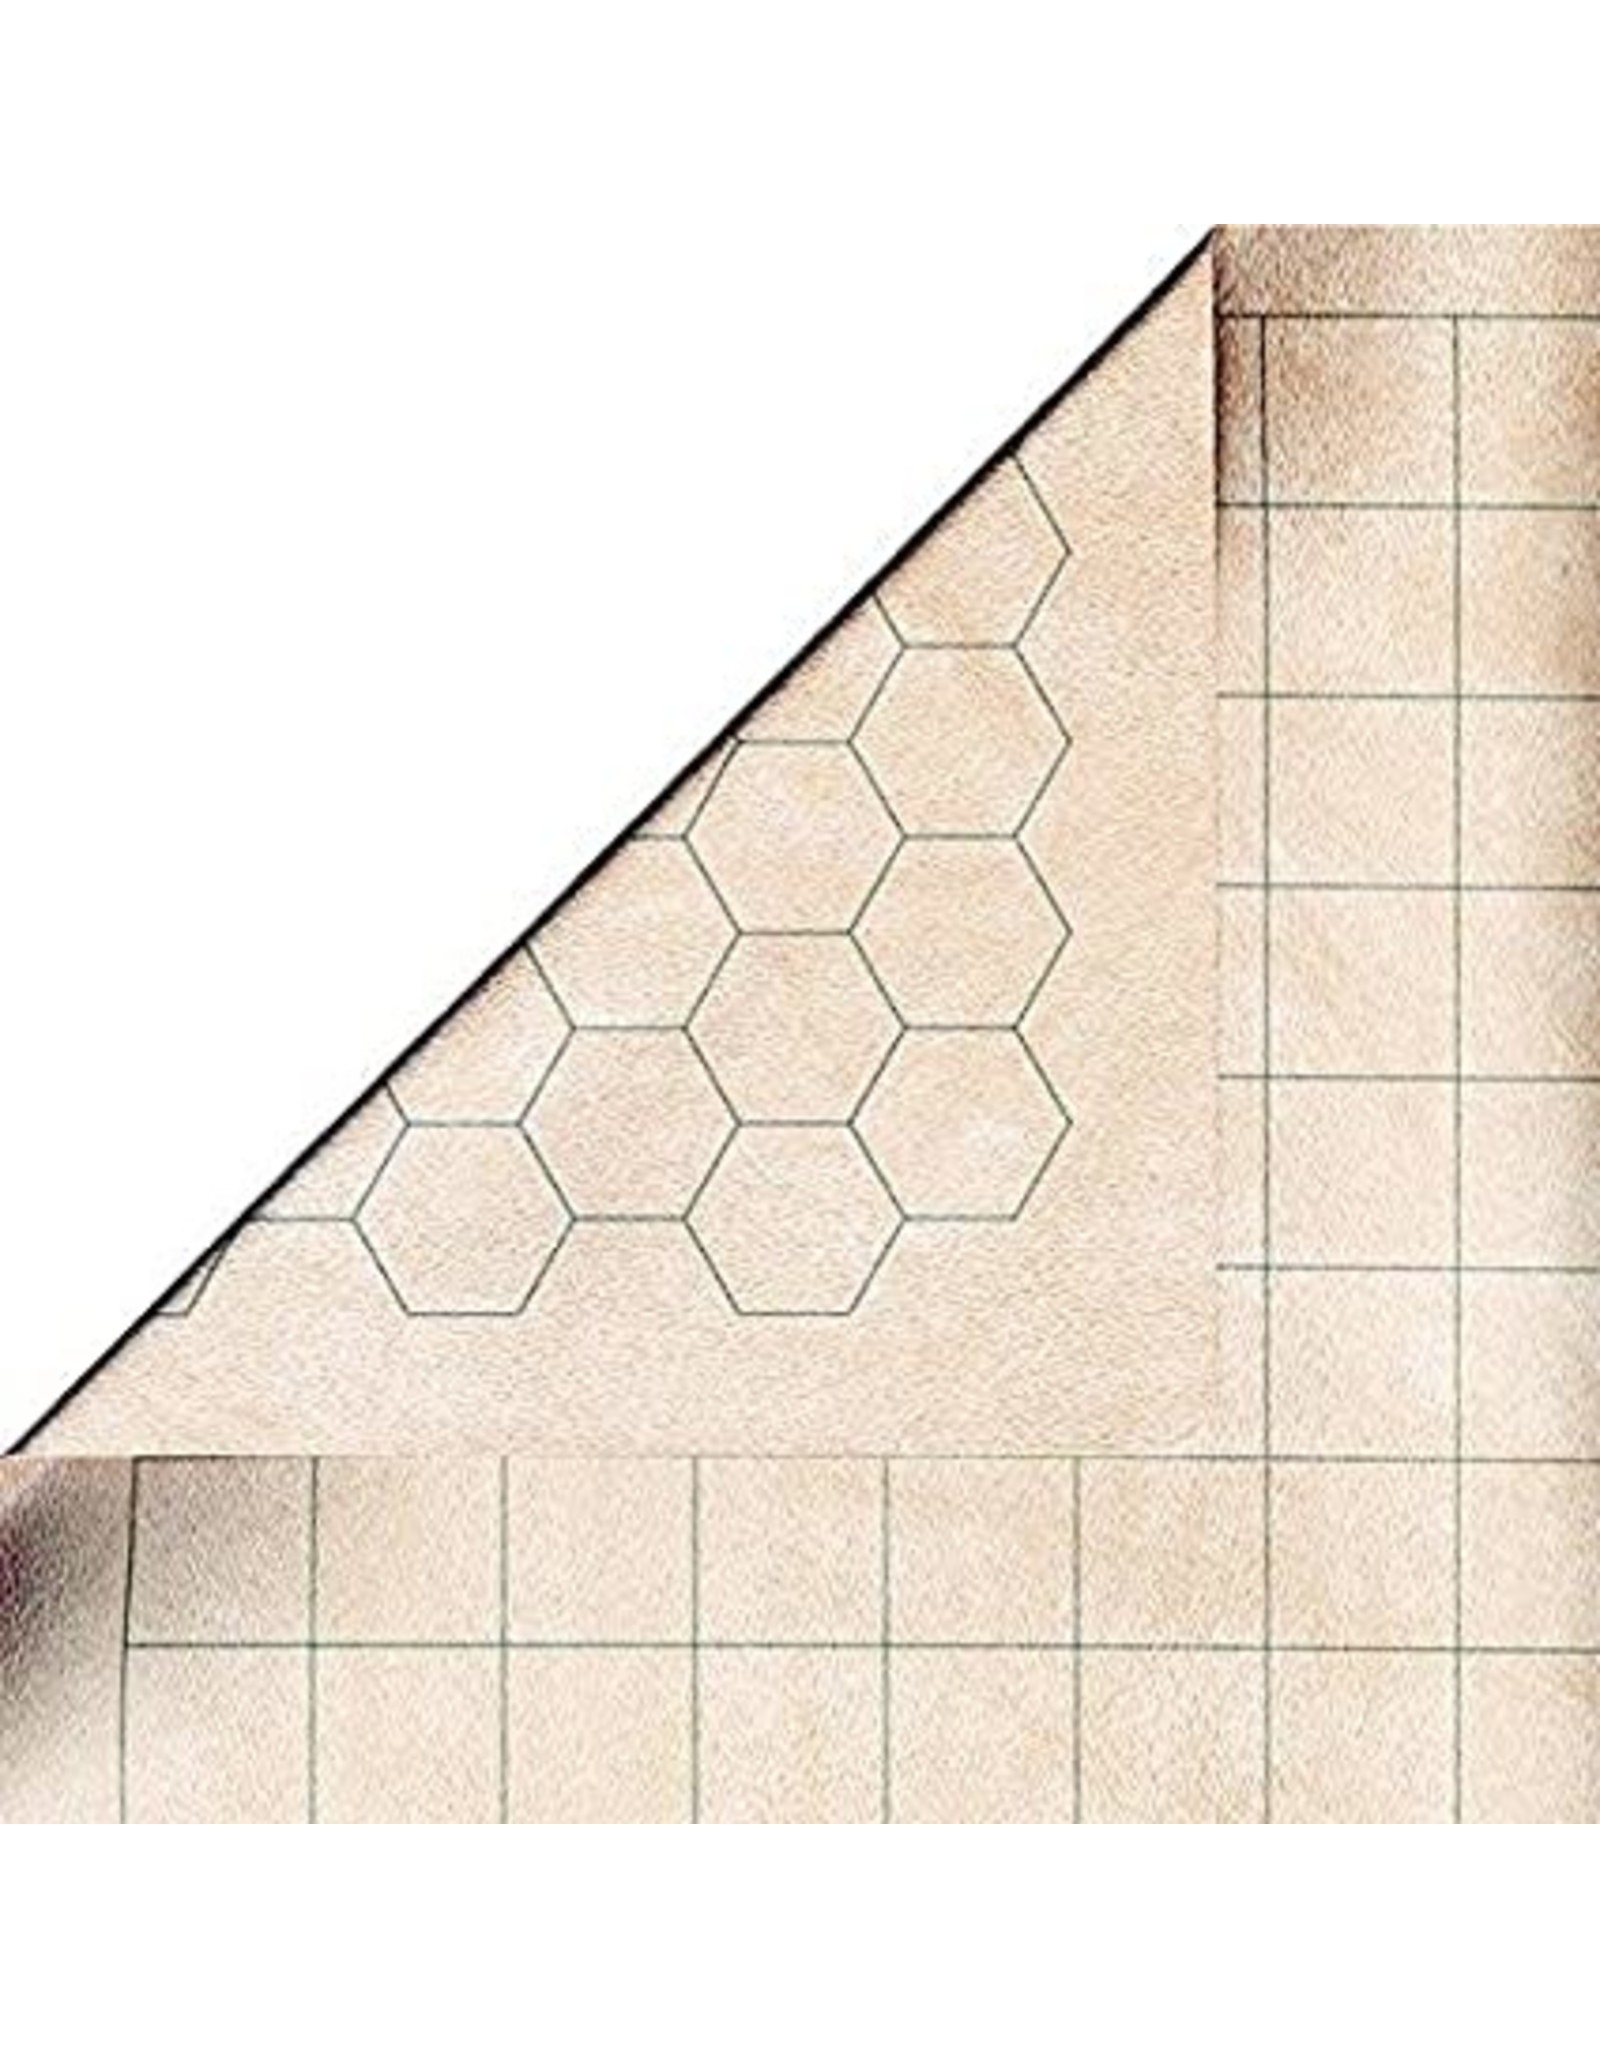 Chessex Battlemat: 1 Inch Squares/Hexes